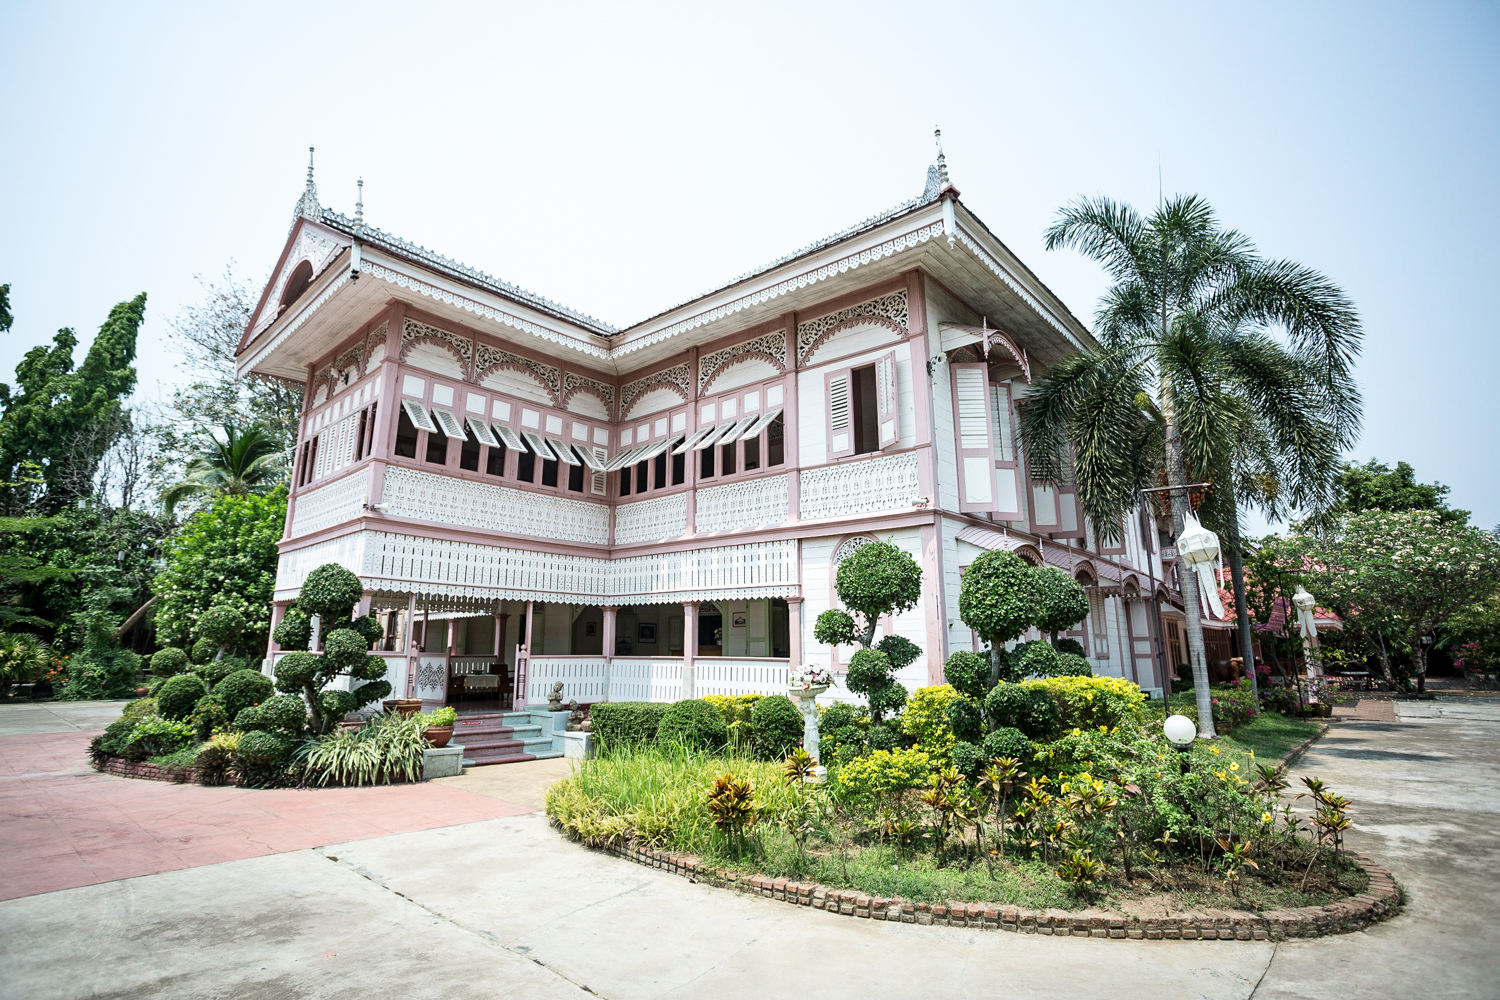 The teakwood Vongburi House in Phrae was built between 1837 and 1907 for the last Prince of Phrae. It's been converted into a museum, although a private section still serves as residence for heirs of the royal family.